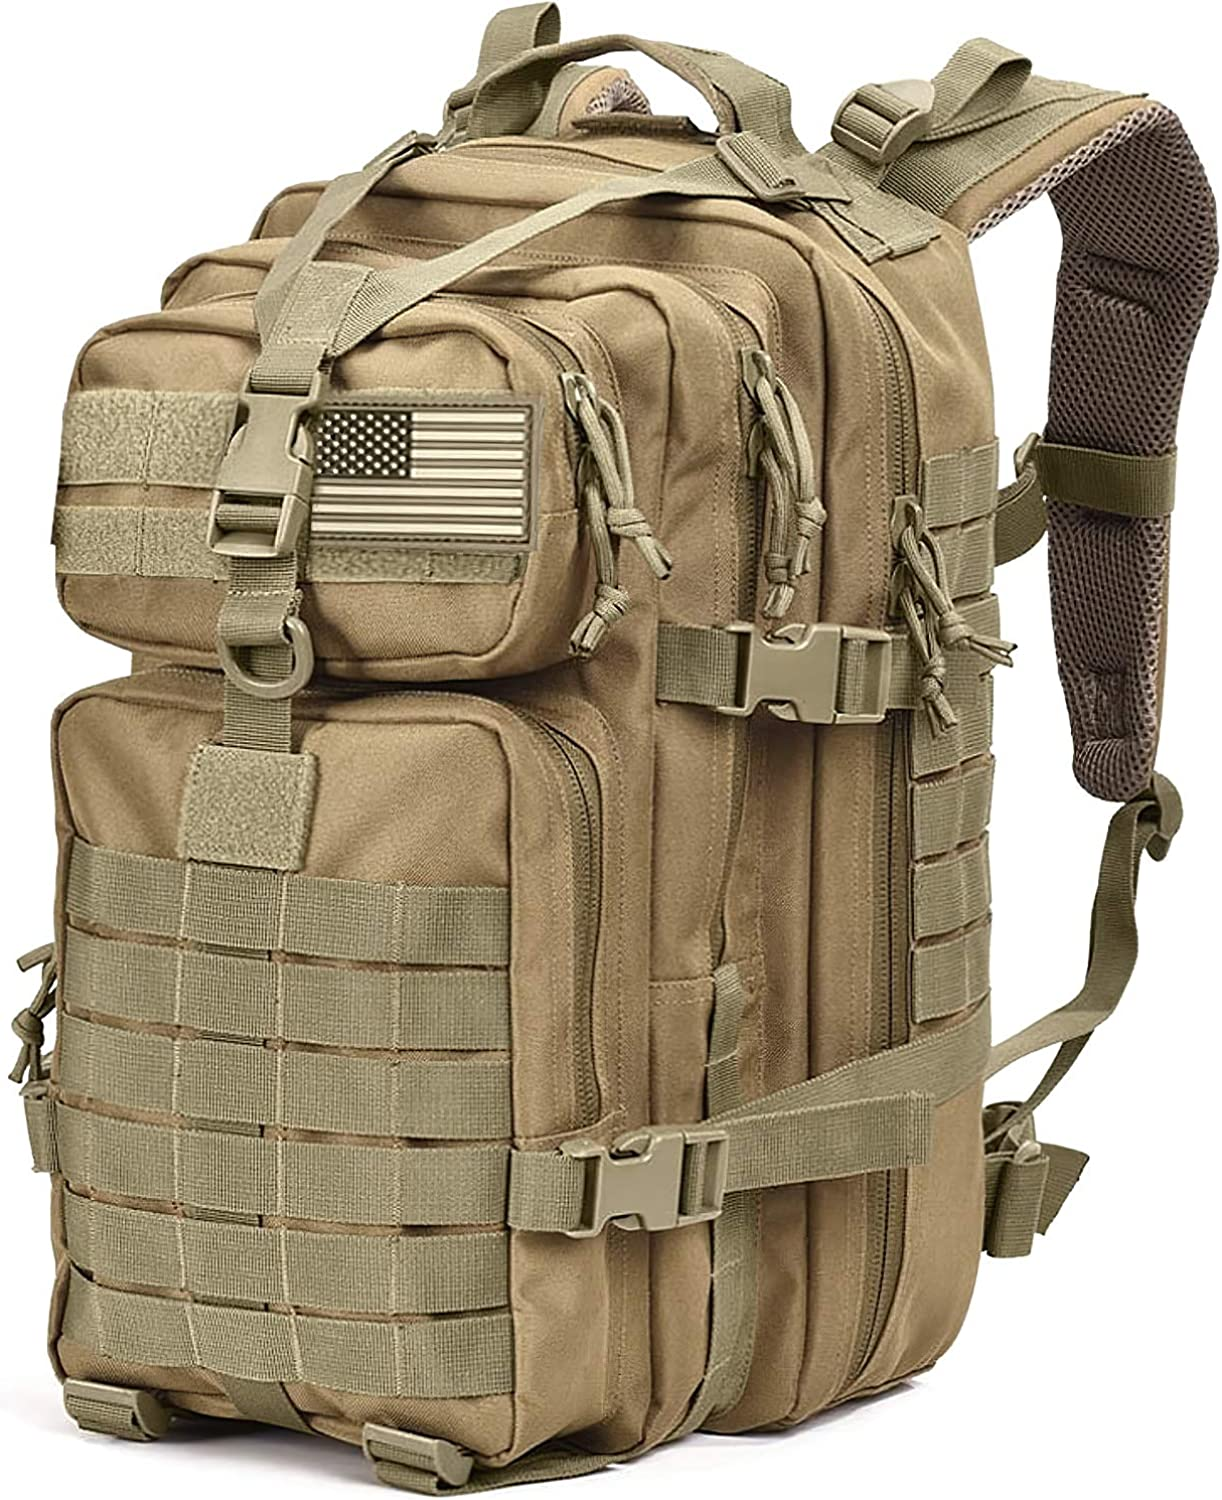 Tru Salute Military Tactical Backpack Large Tan Army 3 Day Assault Pack Molle Bugout Bag Rucksack (tan): Clothing